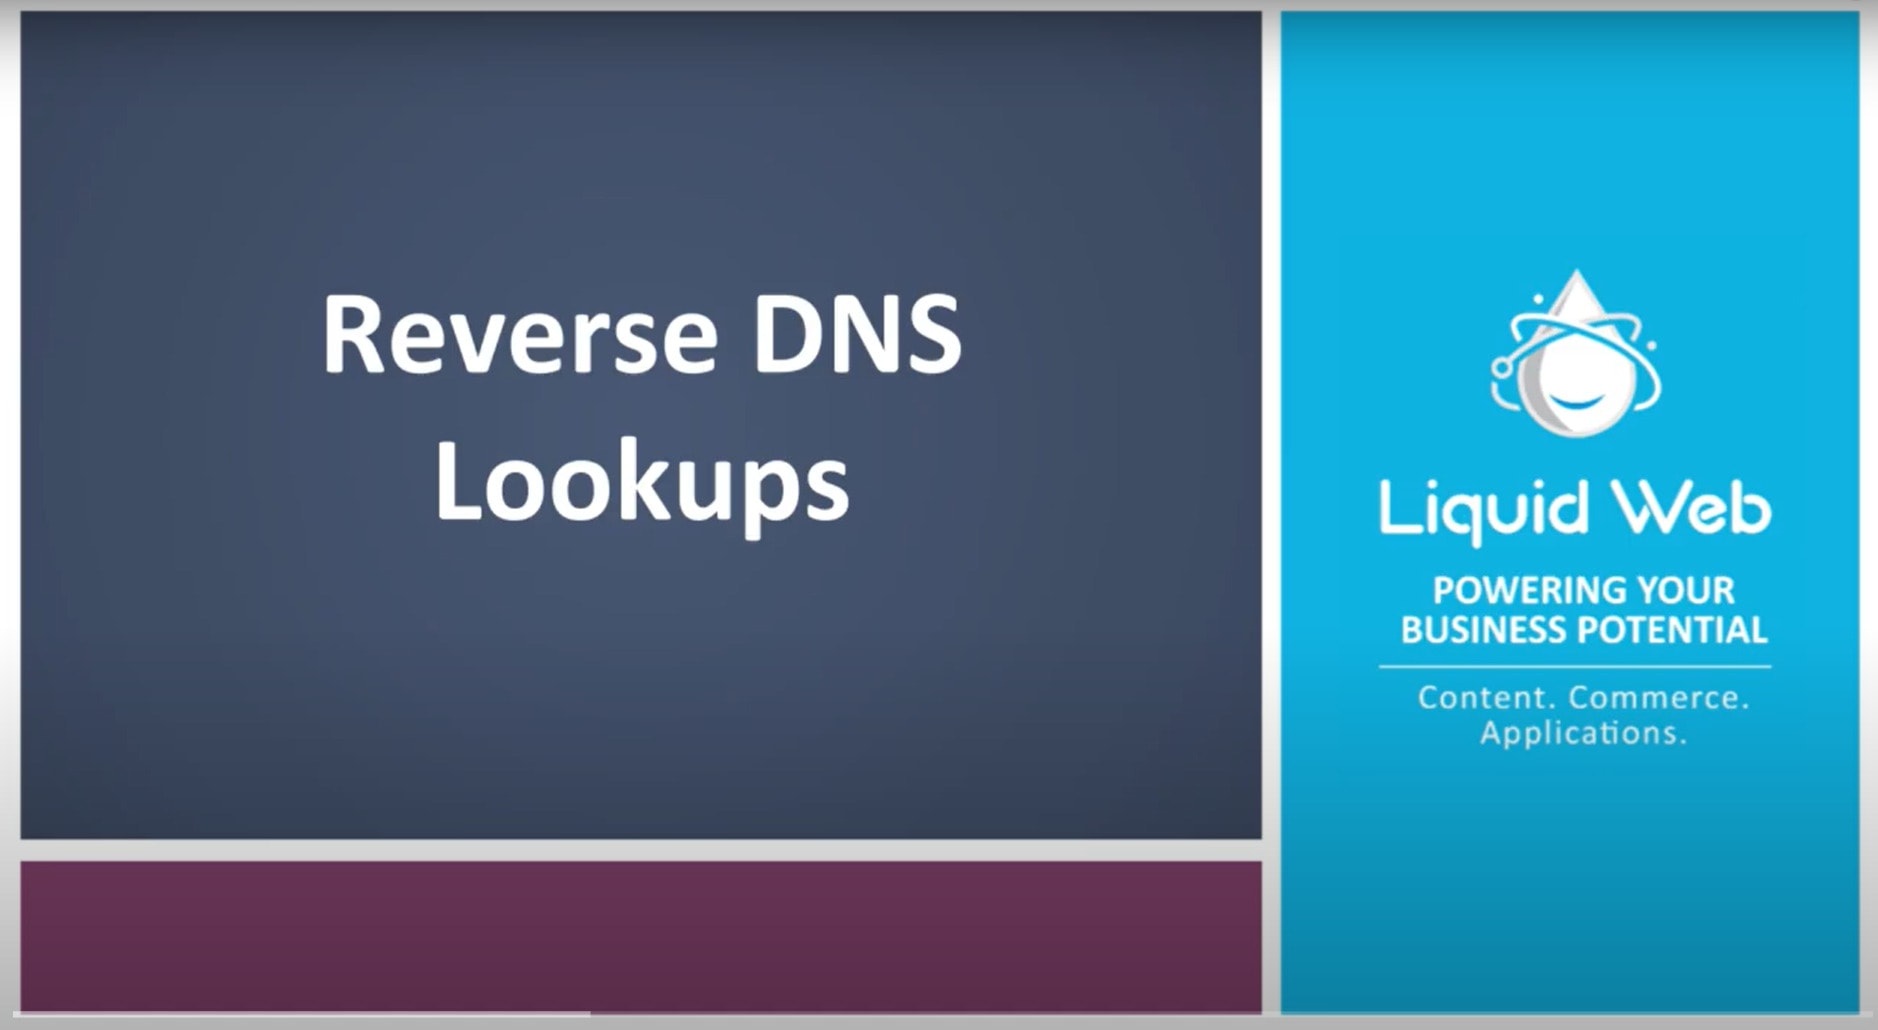 How to Perform a Reverse DNS Lookup